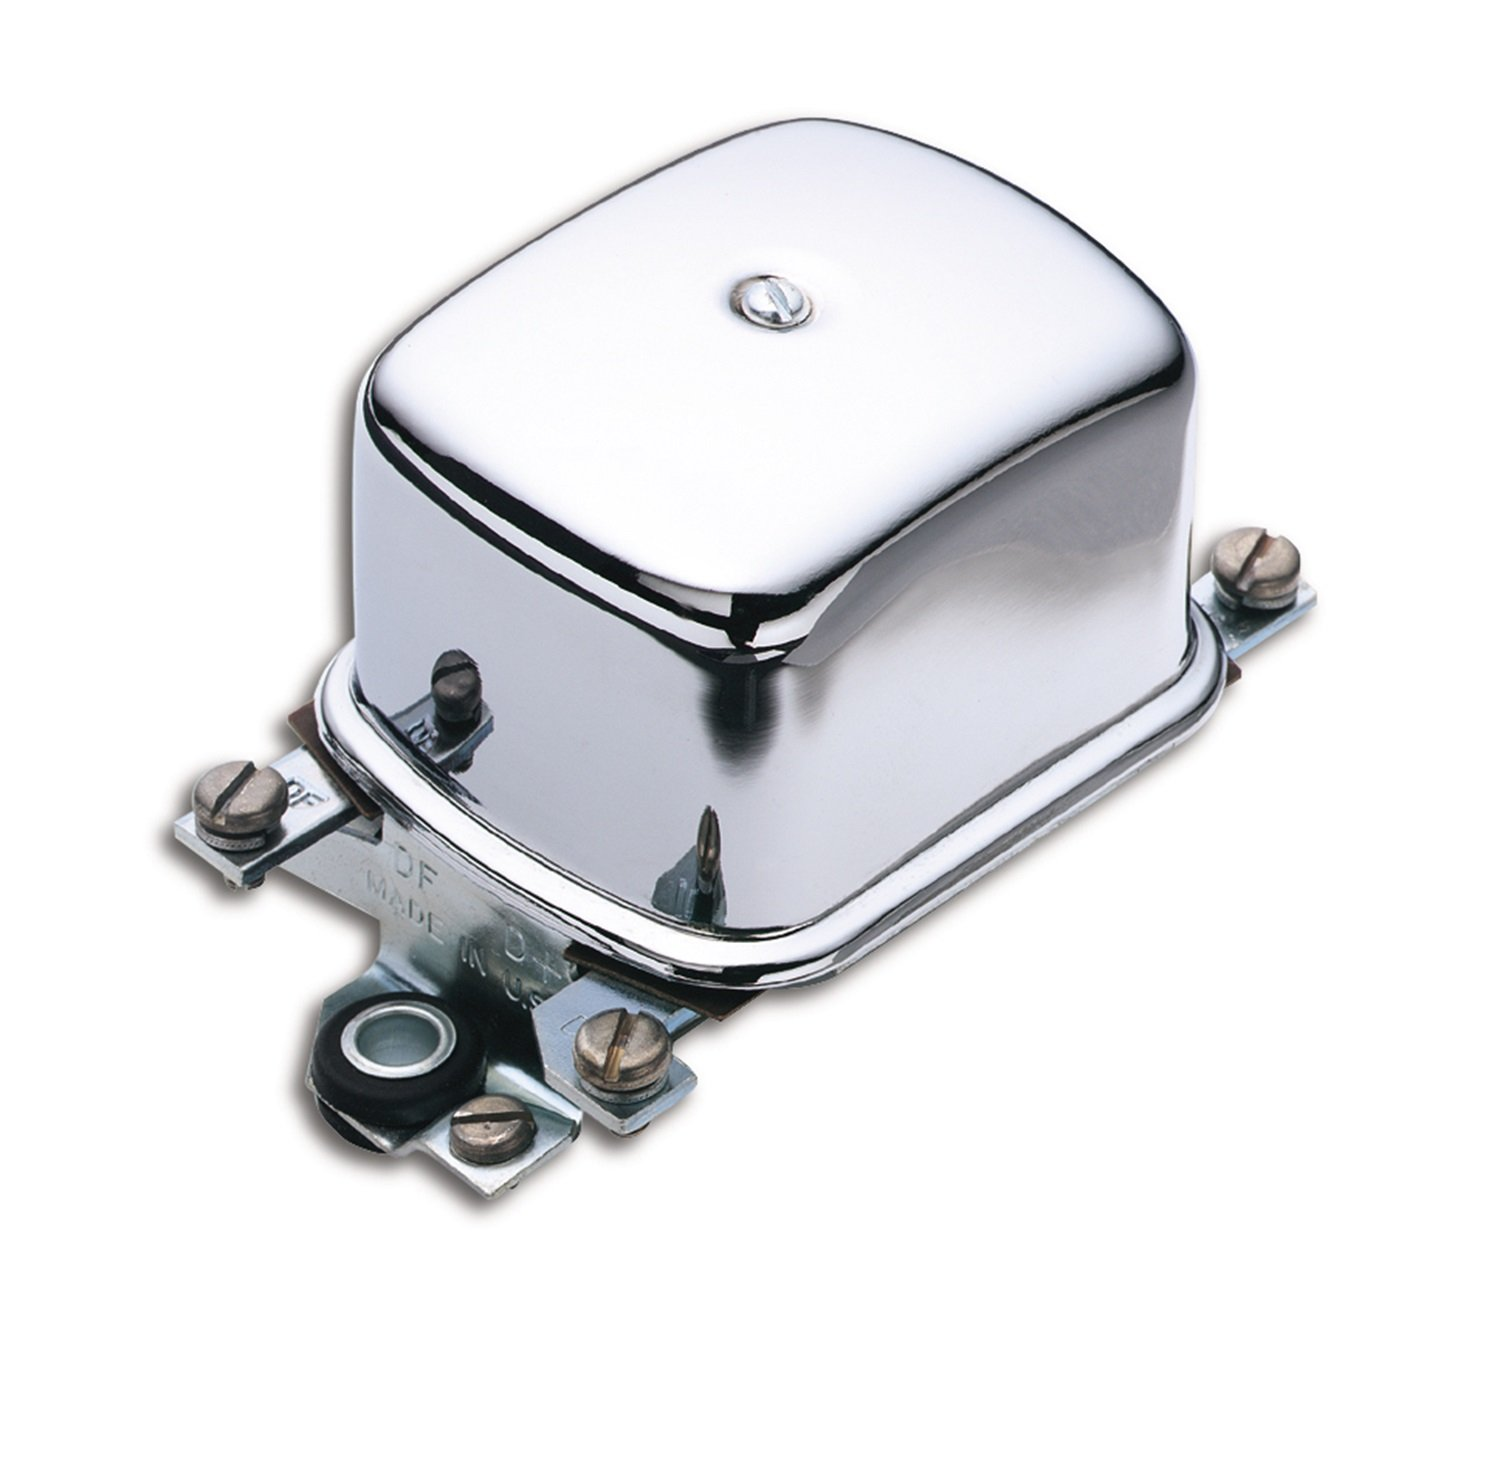 ACCEL 201107C Chrome Electro Mechanical Voltage Regulator by ACCEL